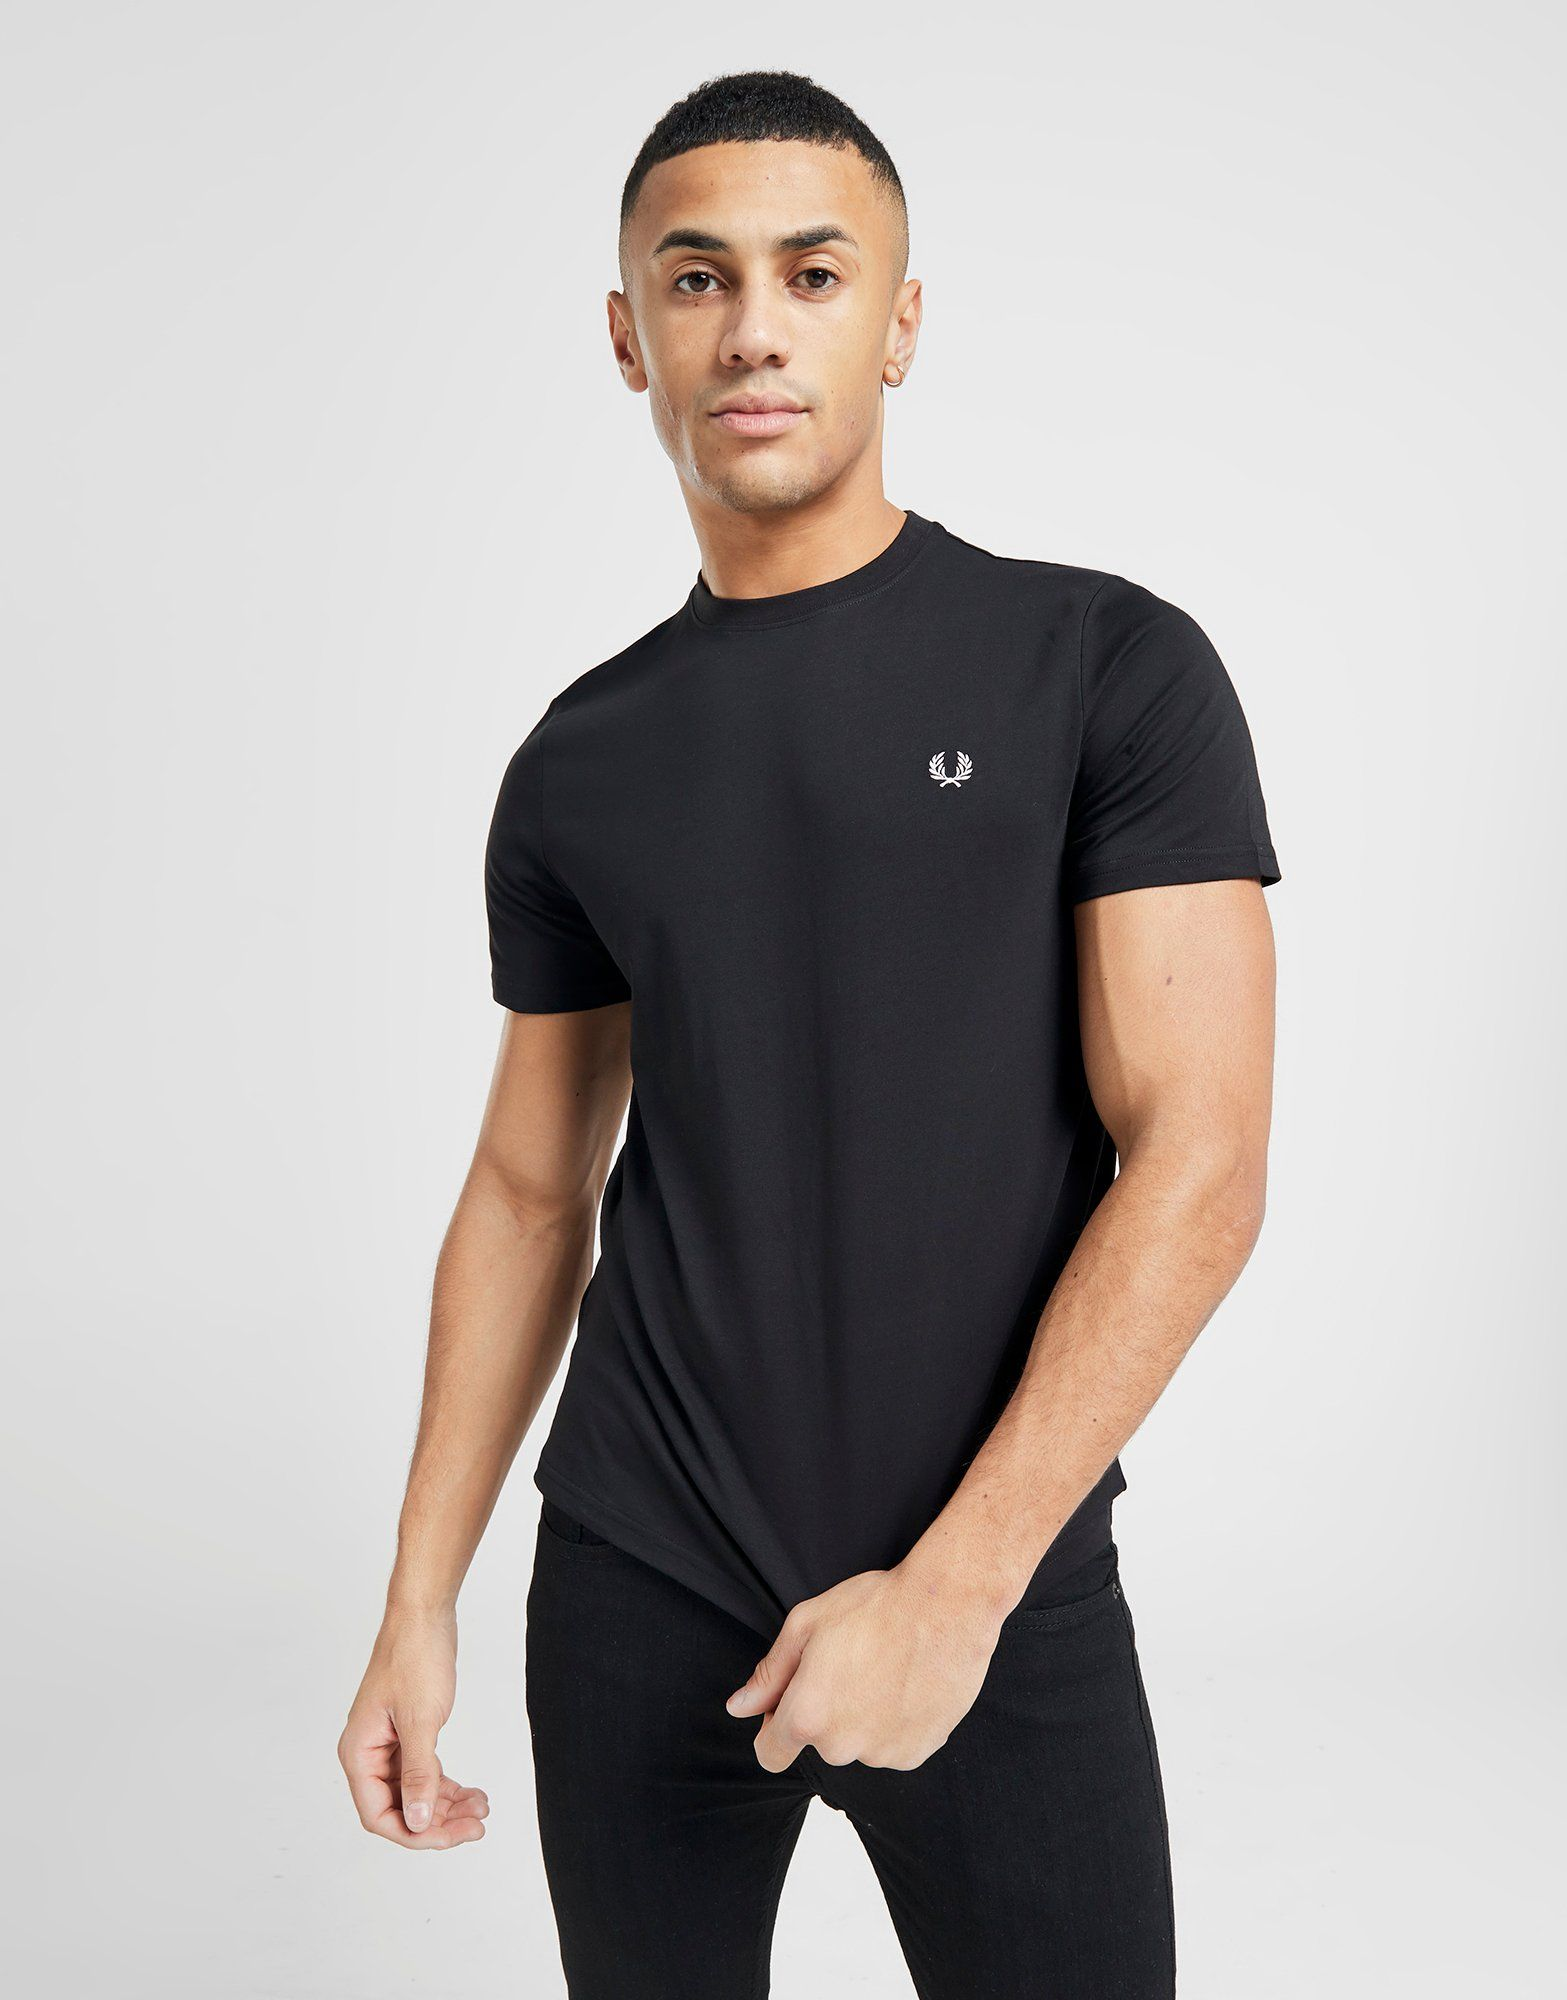 fred perry crew neck t shirt jd sports. Black Bedroom Furniture Sets. Home Design Ideas